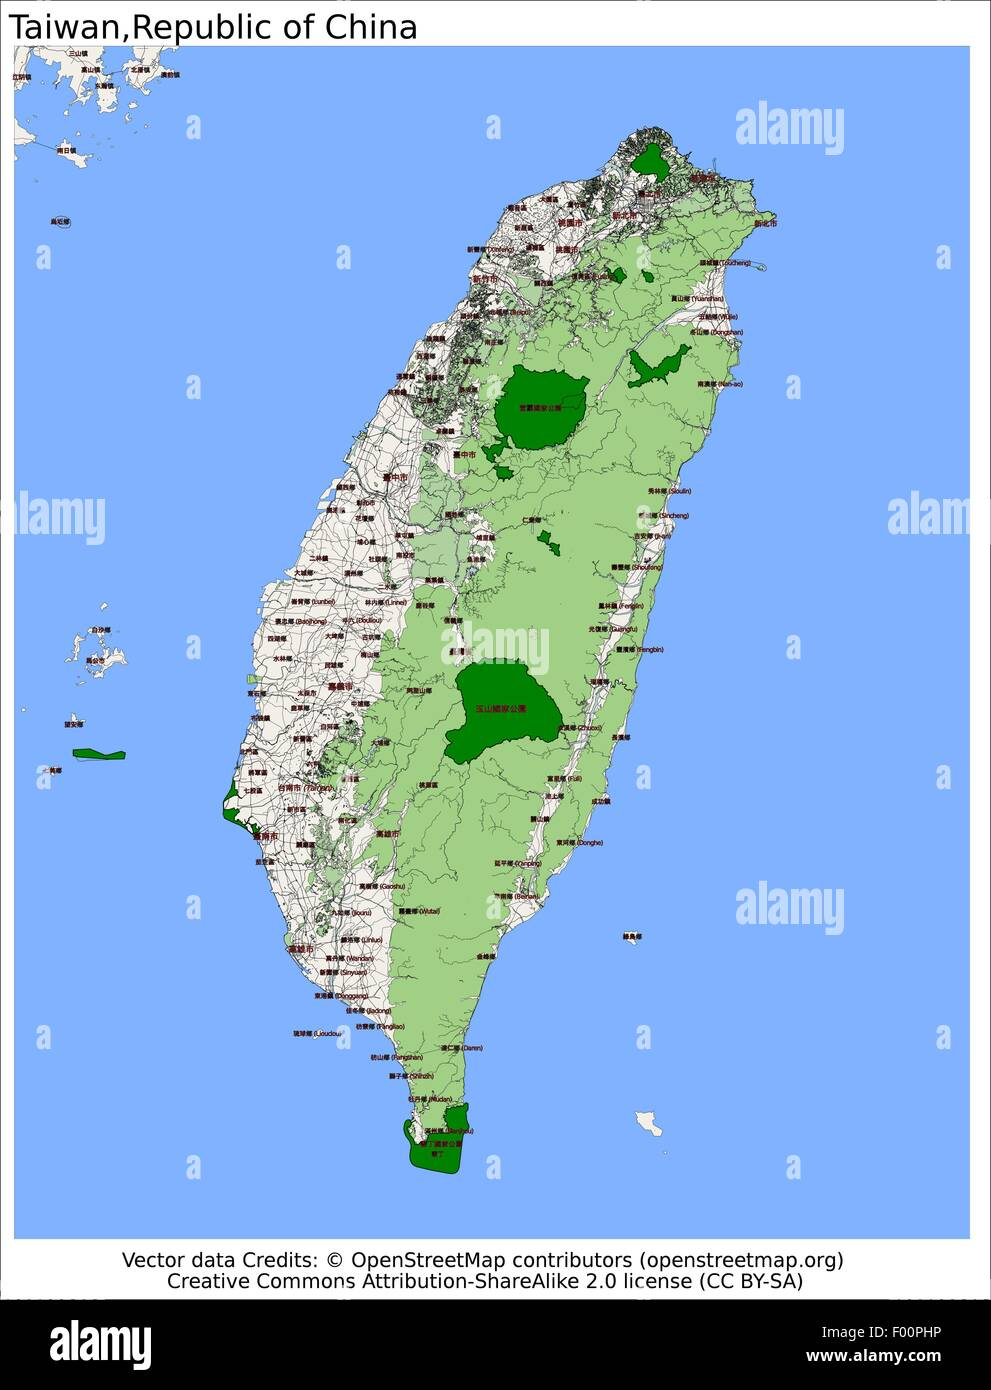 Taiwan Republic Of China Country City Island State Location Map - Location of china